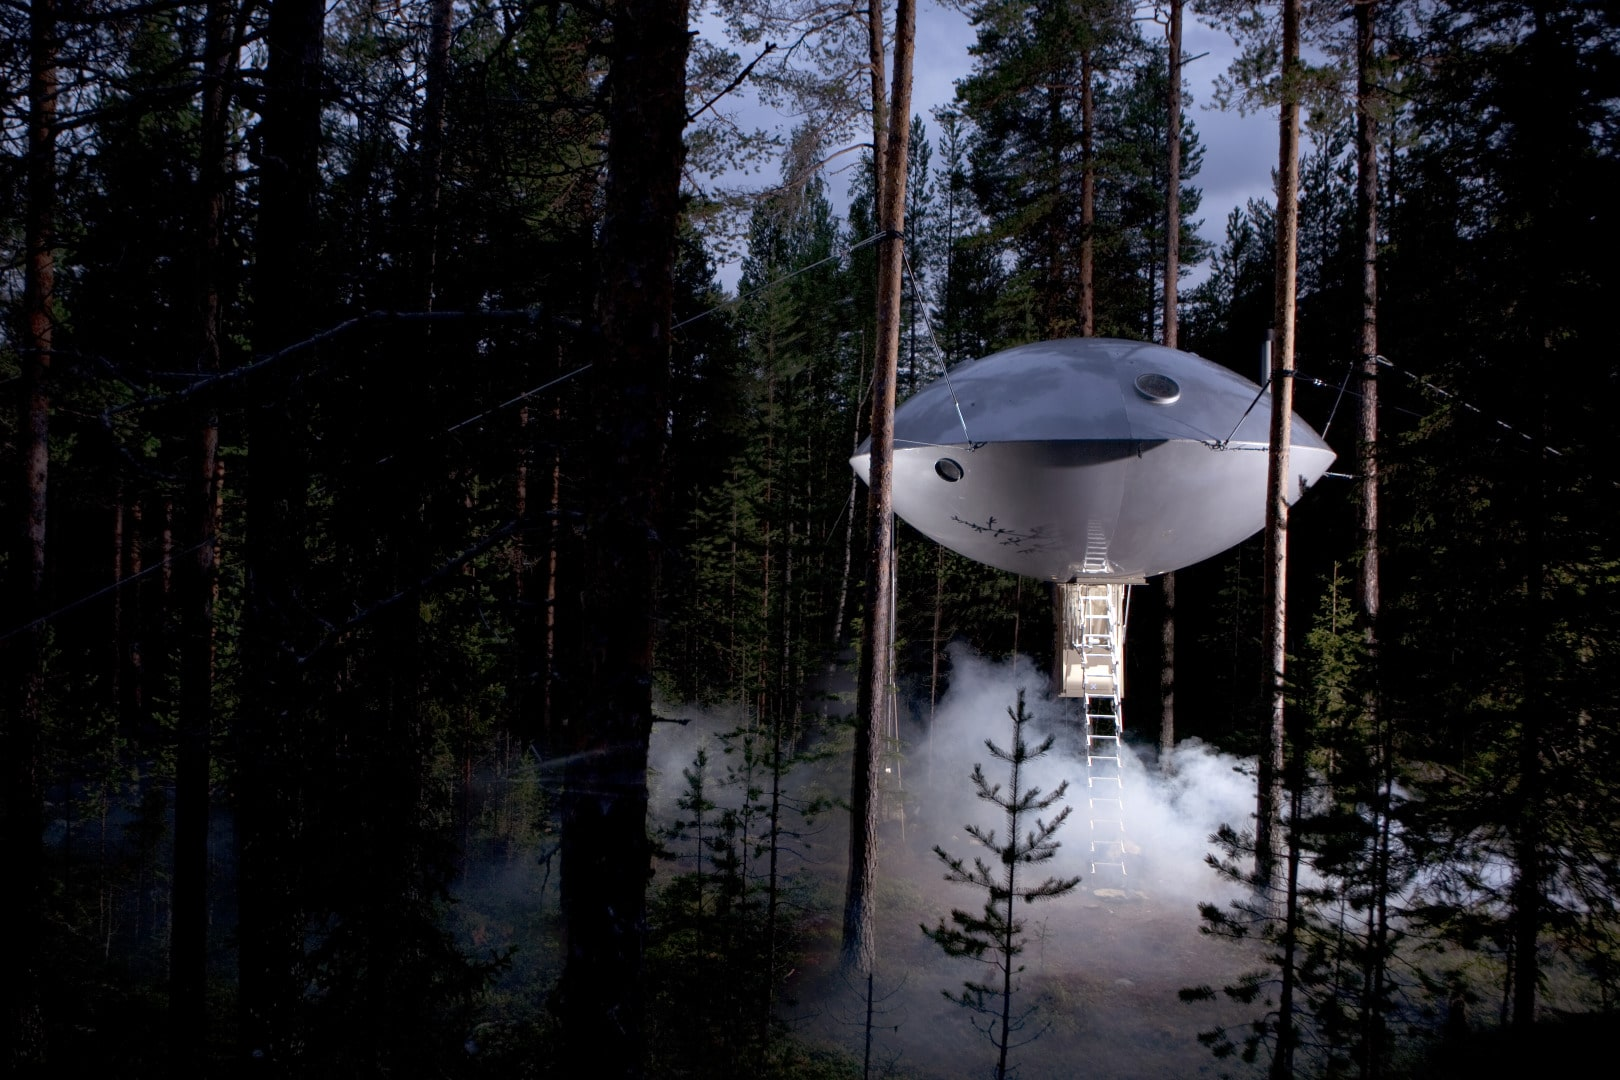 Six unbelievable hotels of the future